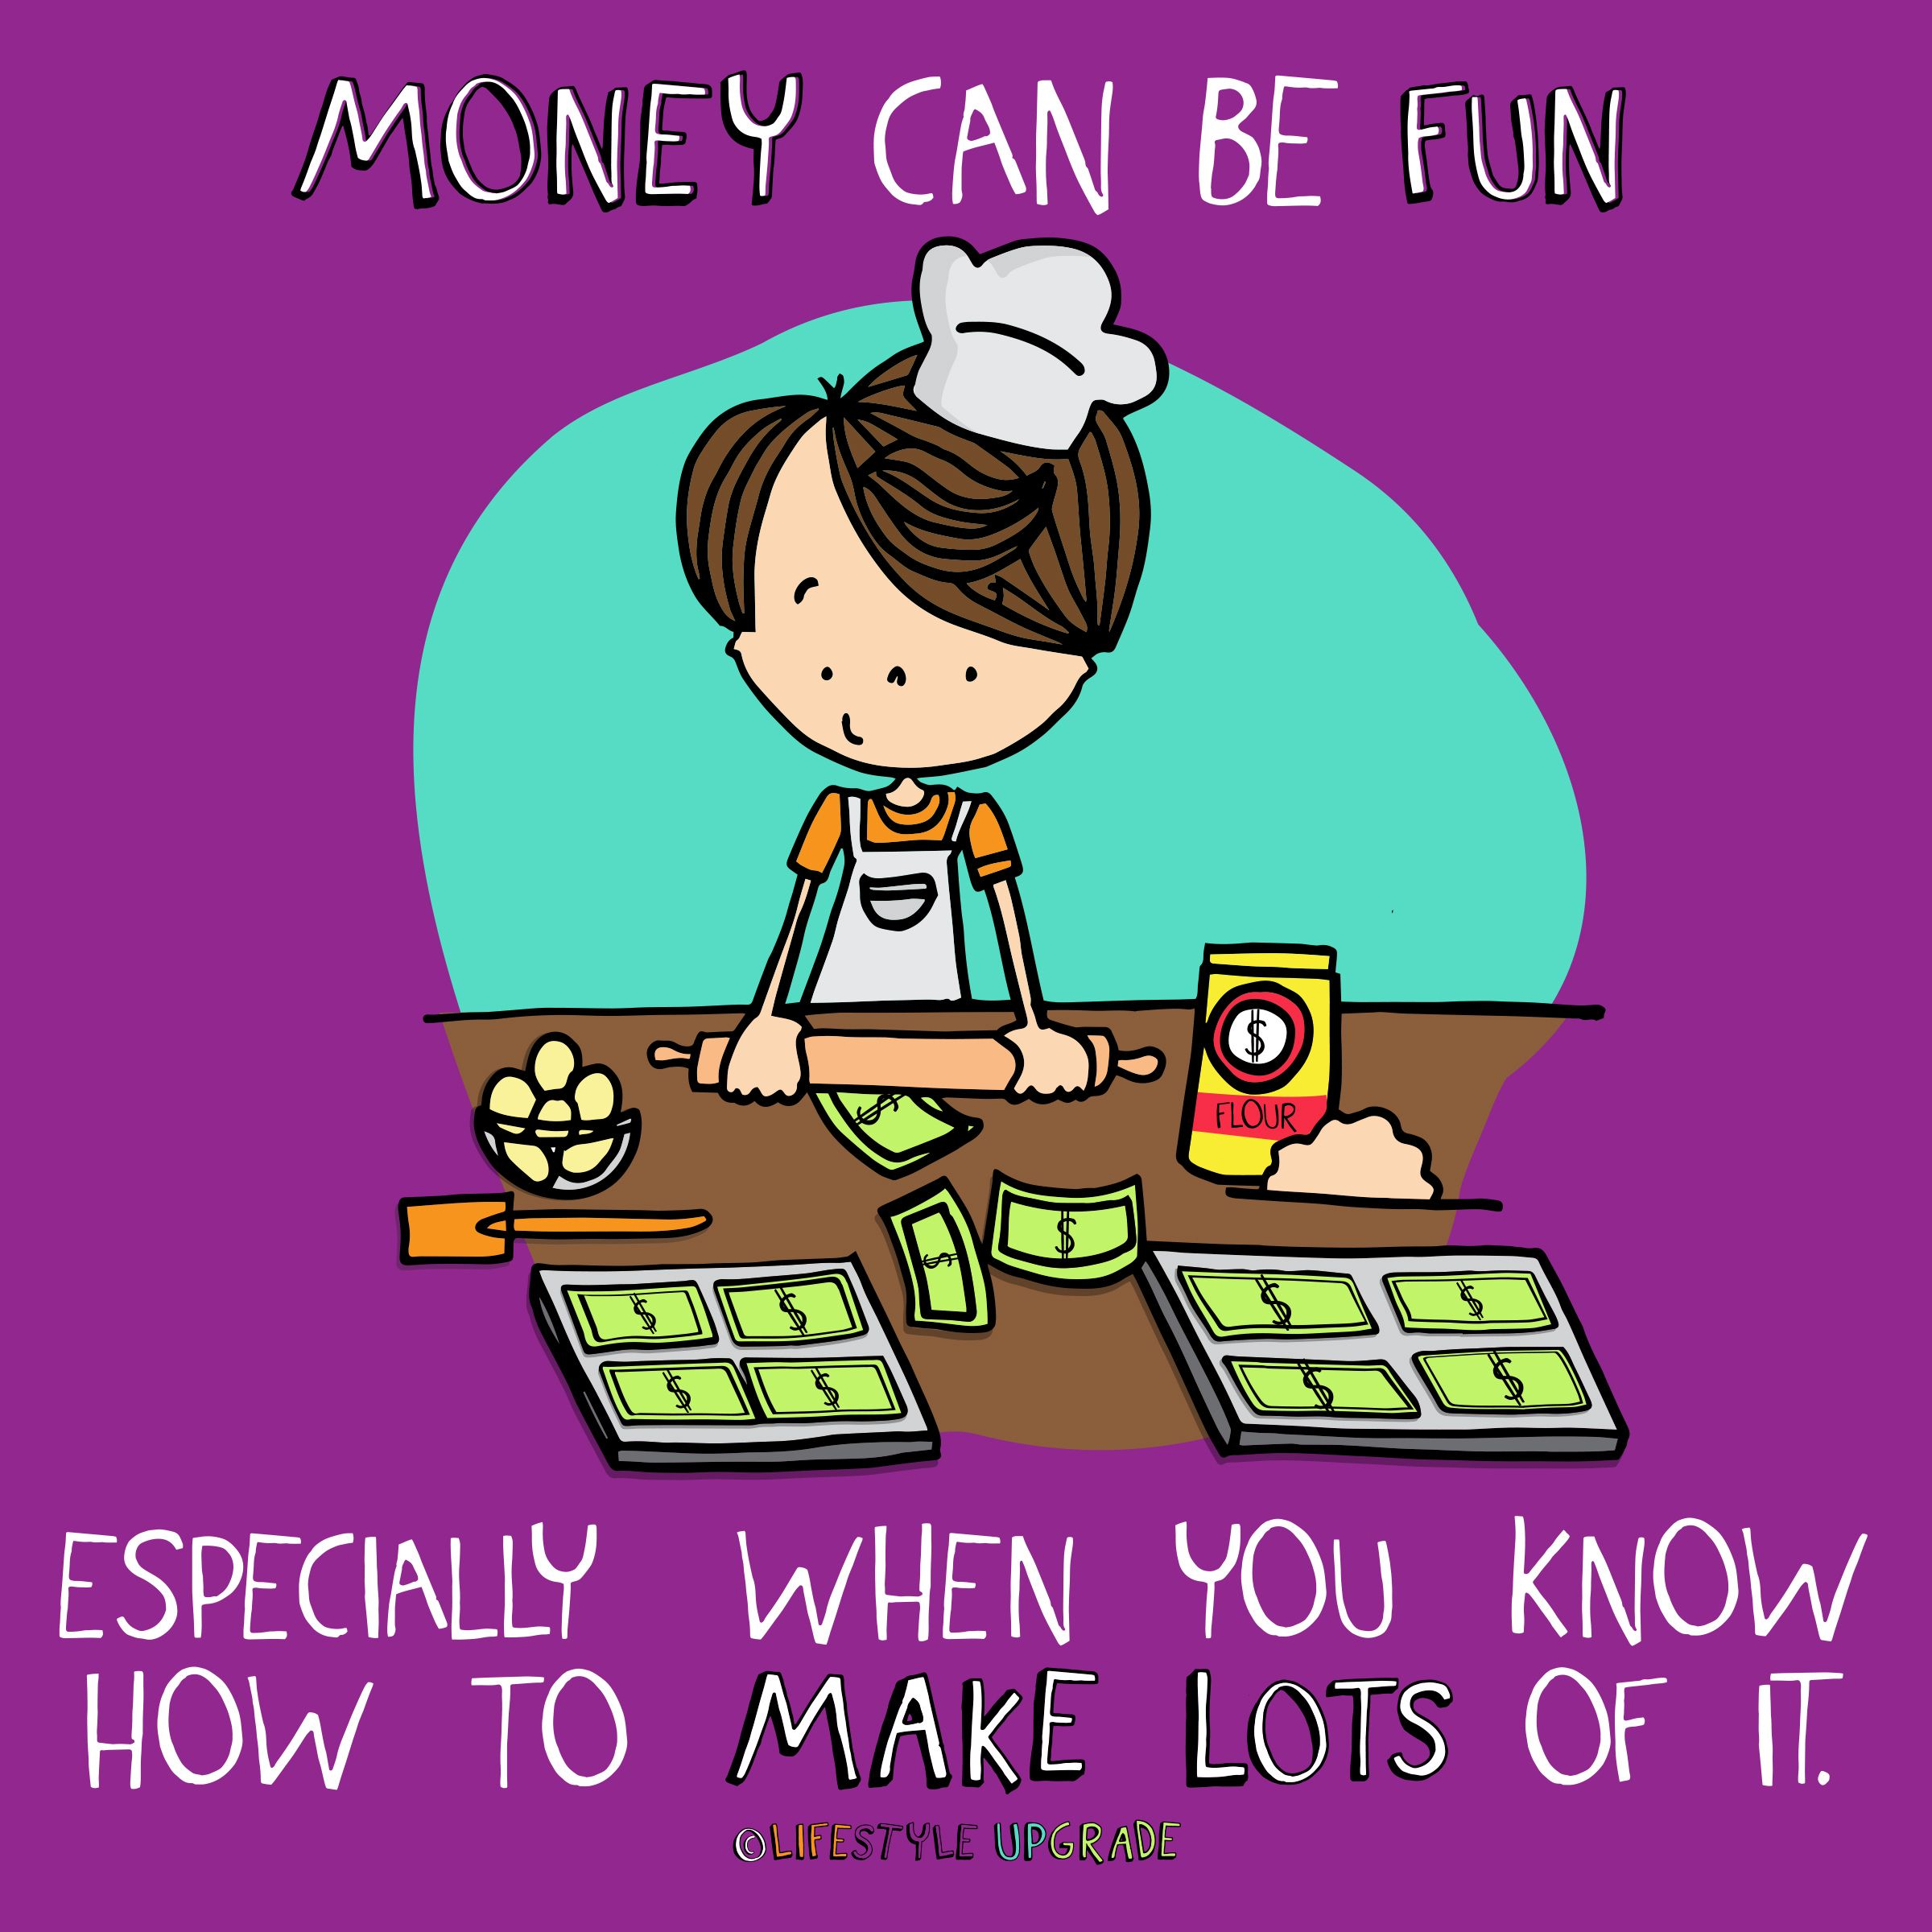 Money Can Be Fun If Especially When You Know How To Make Lots Of It For More Money Tips And Financial Ma Financial Management Money Management Manager Quotes